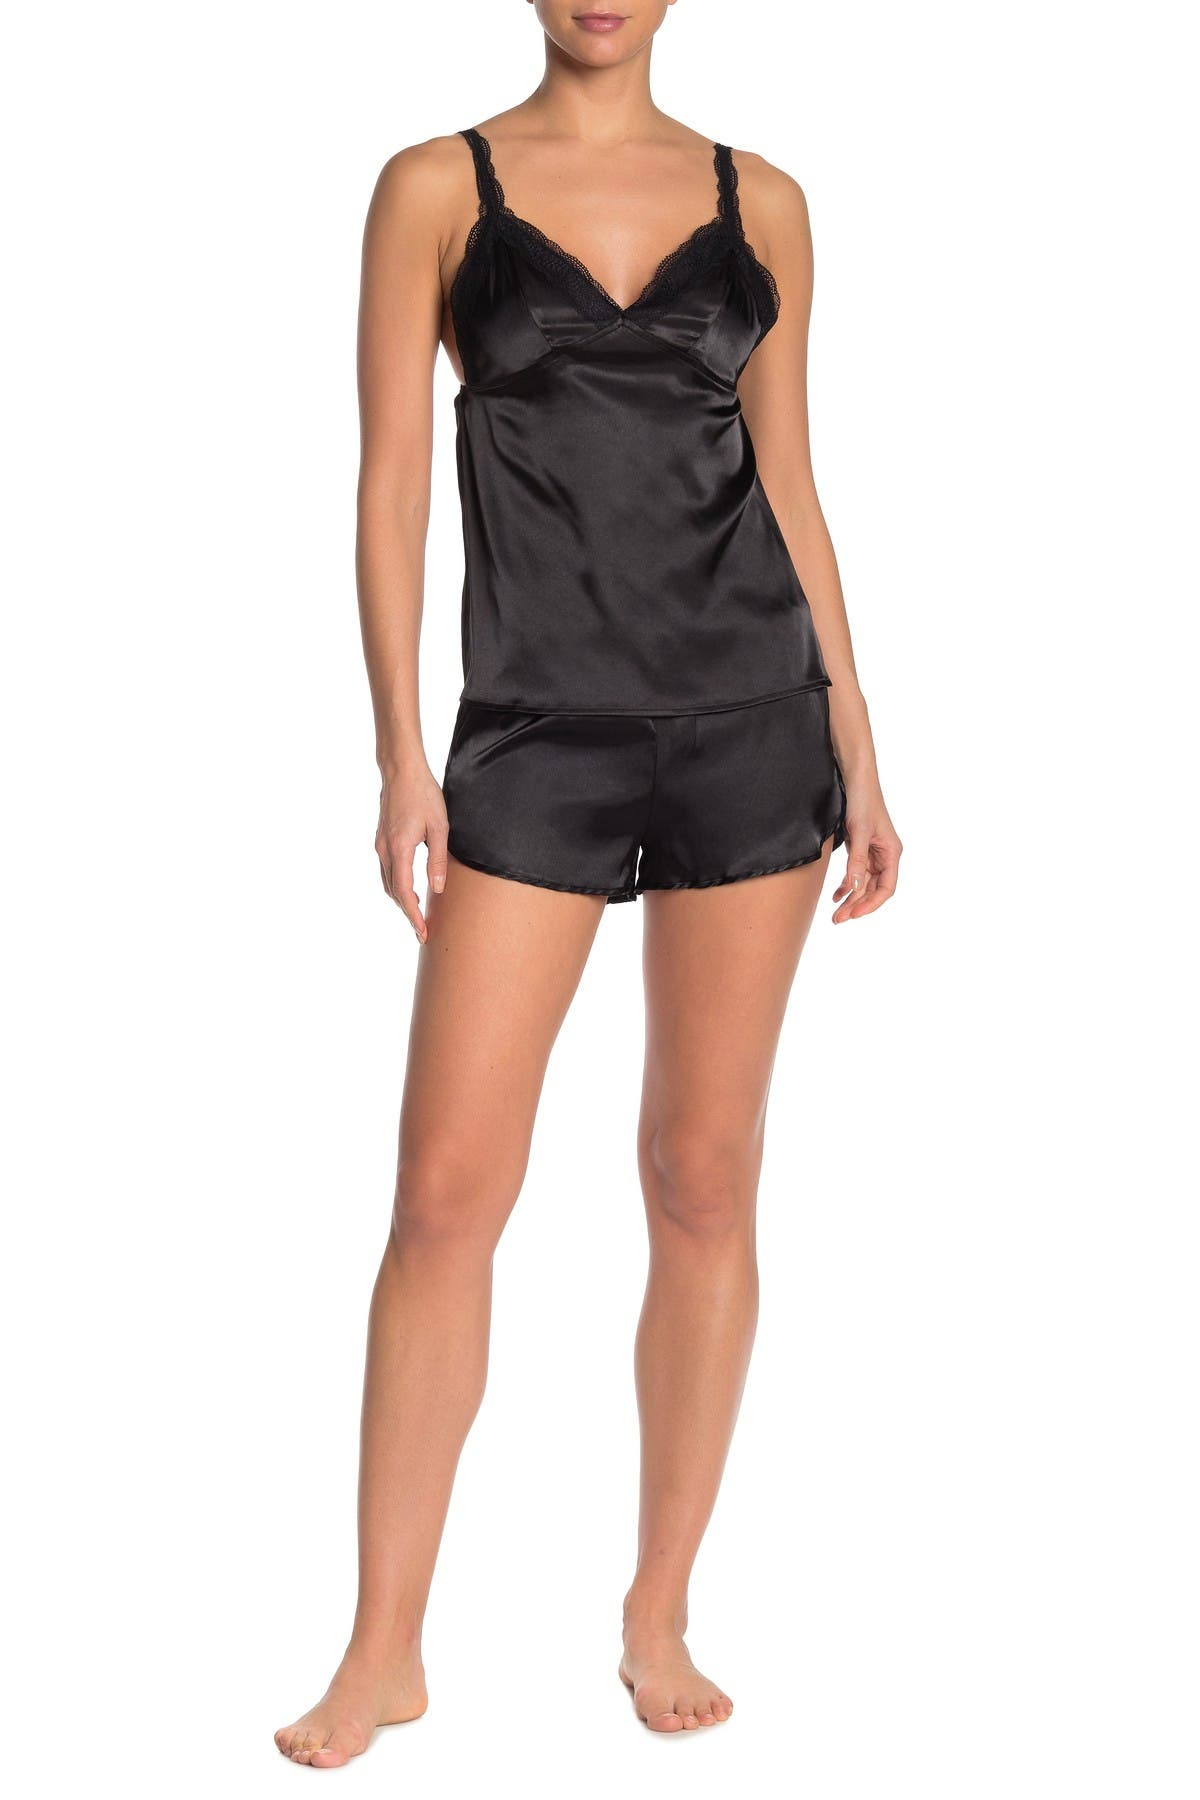 Image of COZY ROZY Rozy Camisole & Shorts Pajama 2-Piece Set